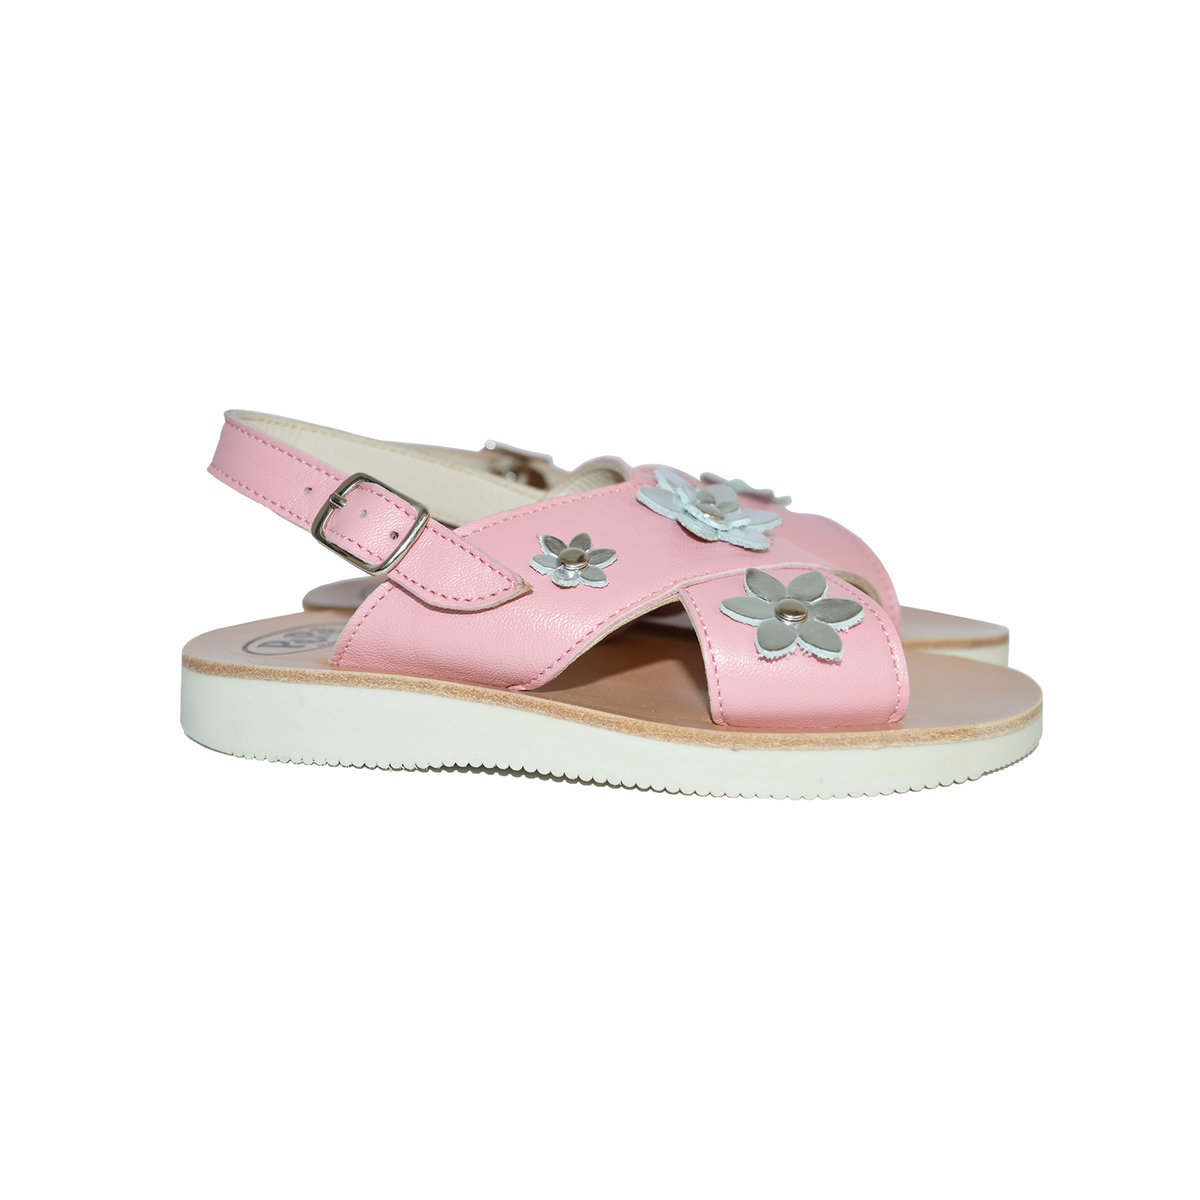 fe12c8389d6 Leather Sandals with Embellished Flower Thumbnail